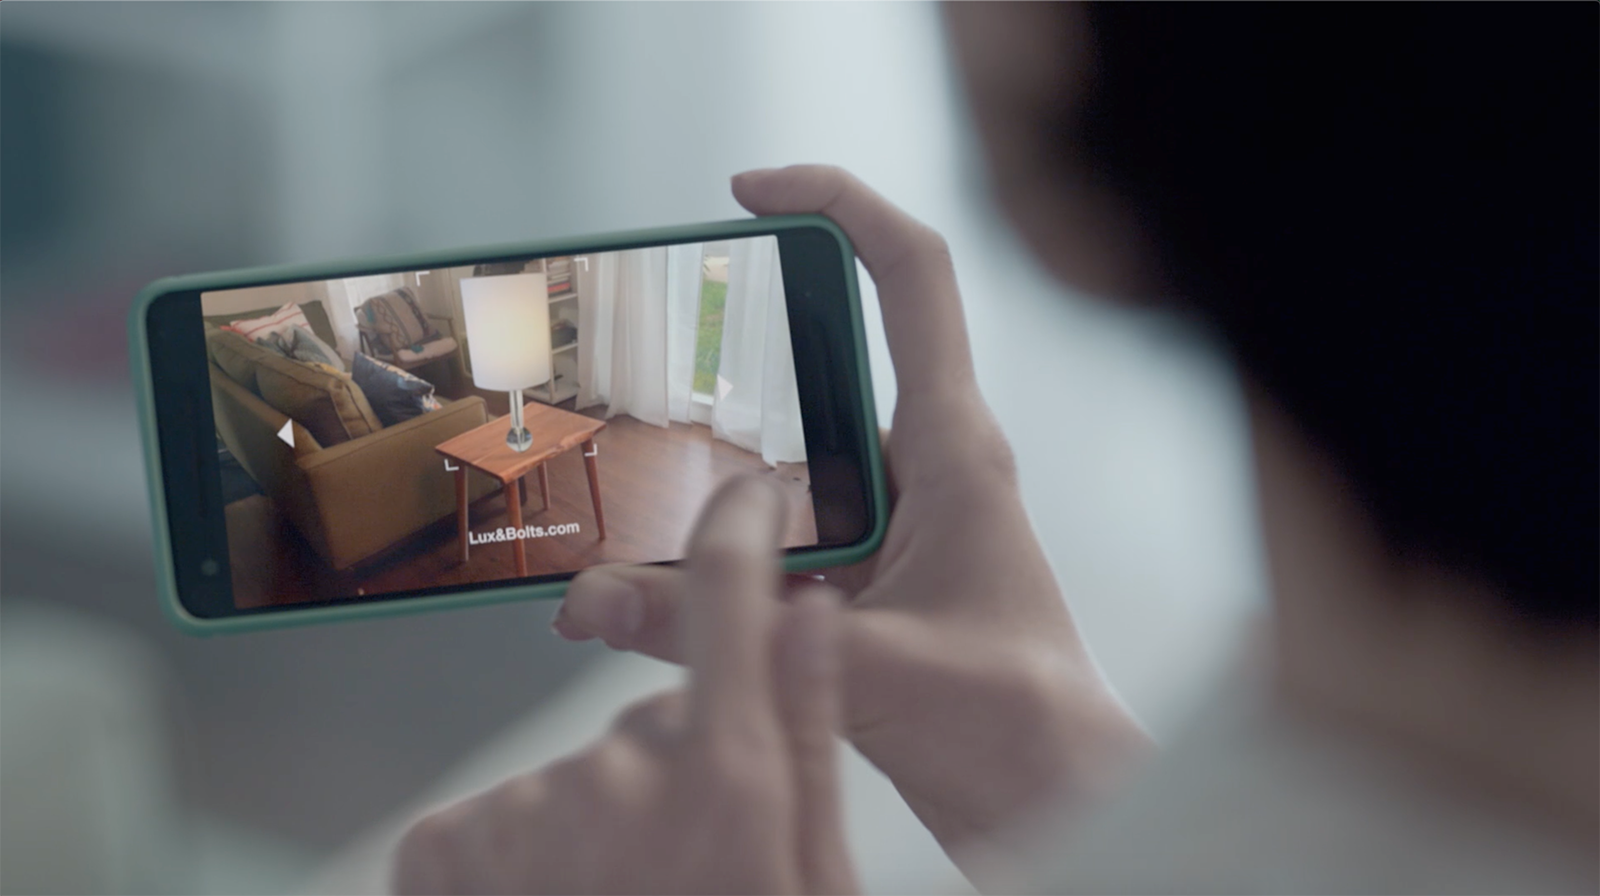 Person using augmented reality on their mobile phone to see how a product would look in their home.